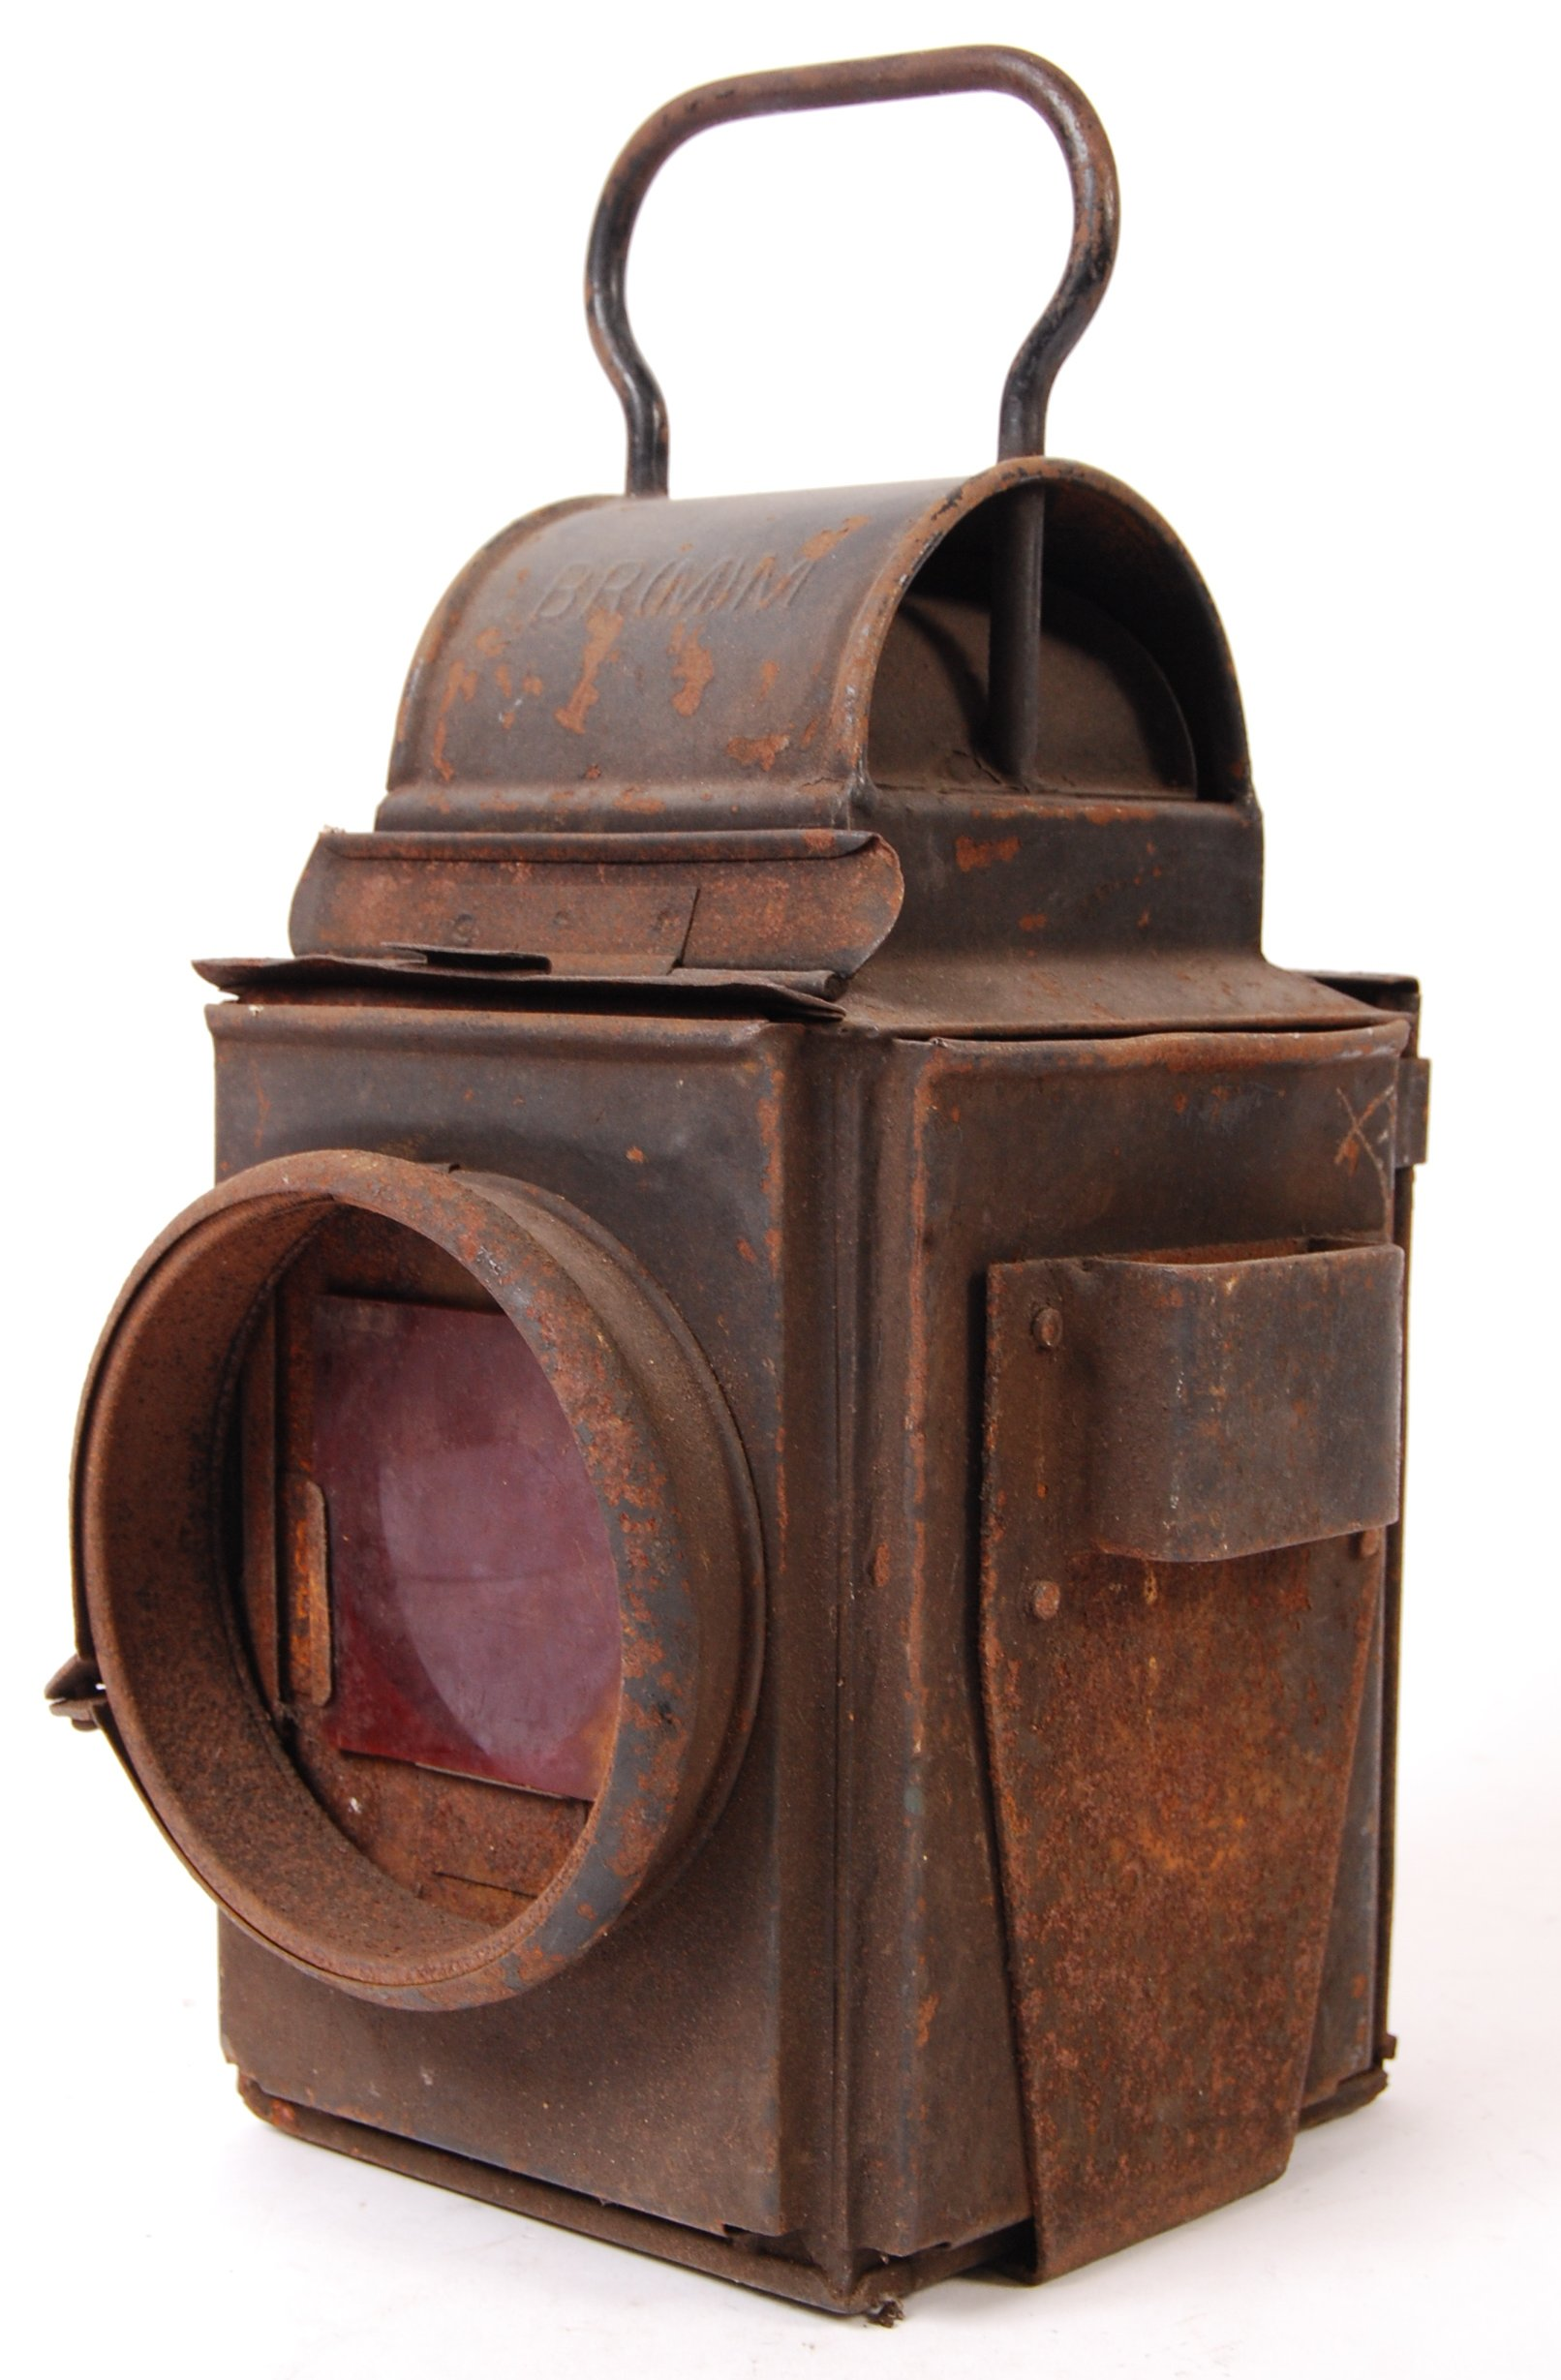 Lot 135 - VINTAGE BRITISH RAILWAYS BR RAILWAY LAMP / LANTERN